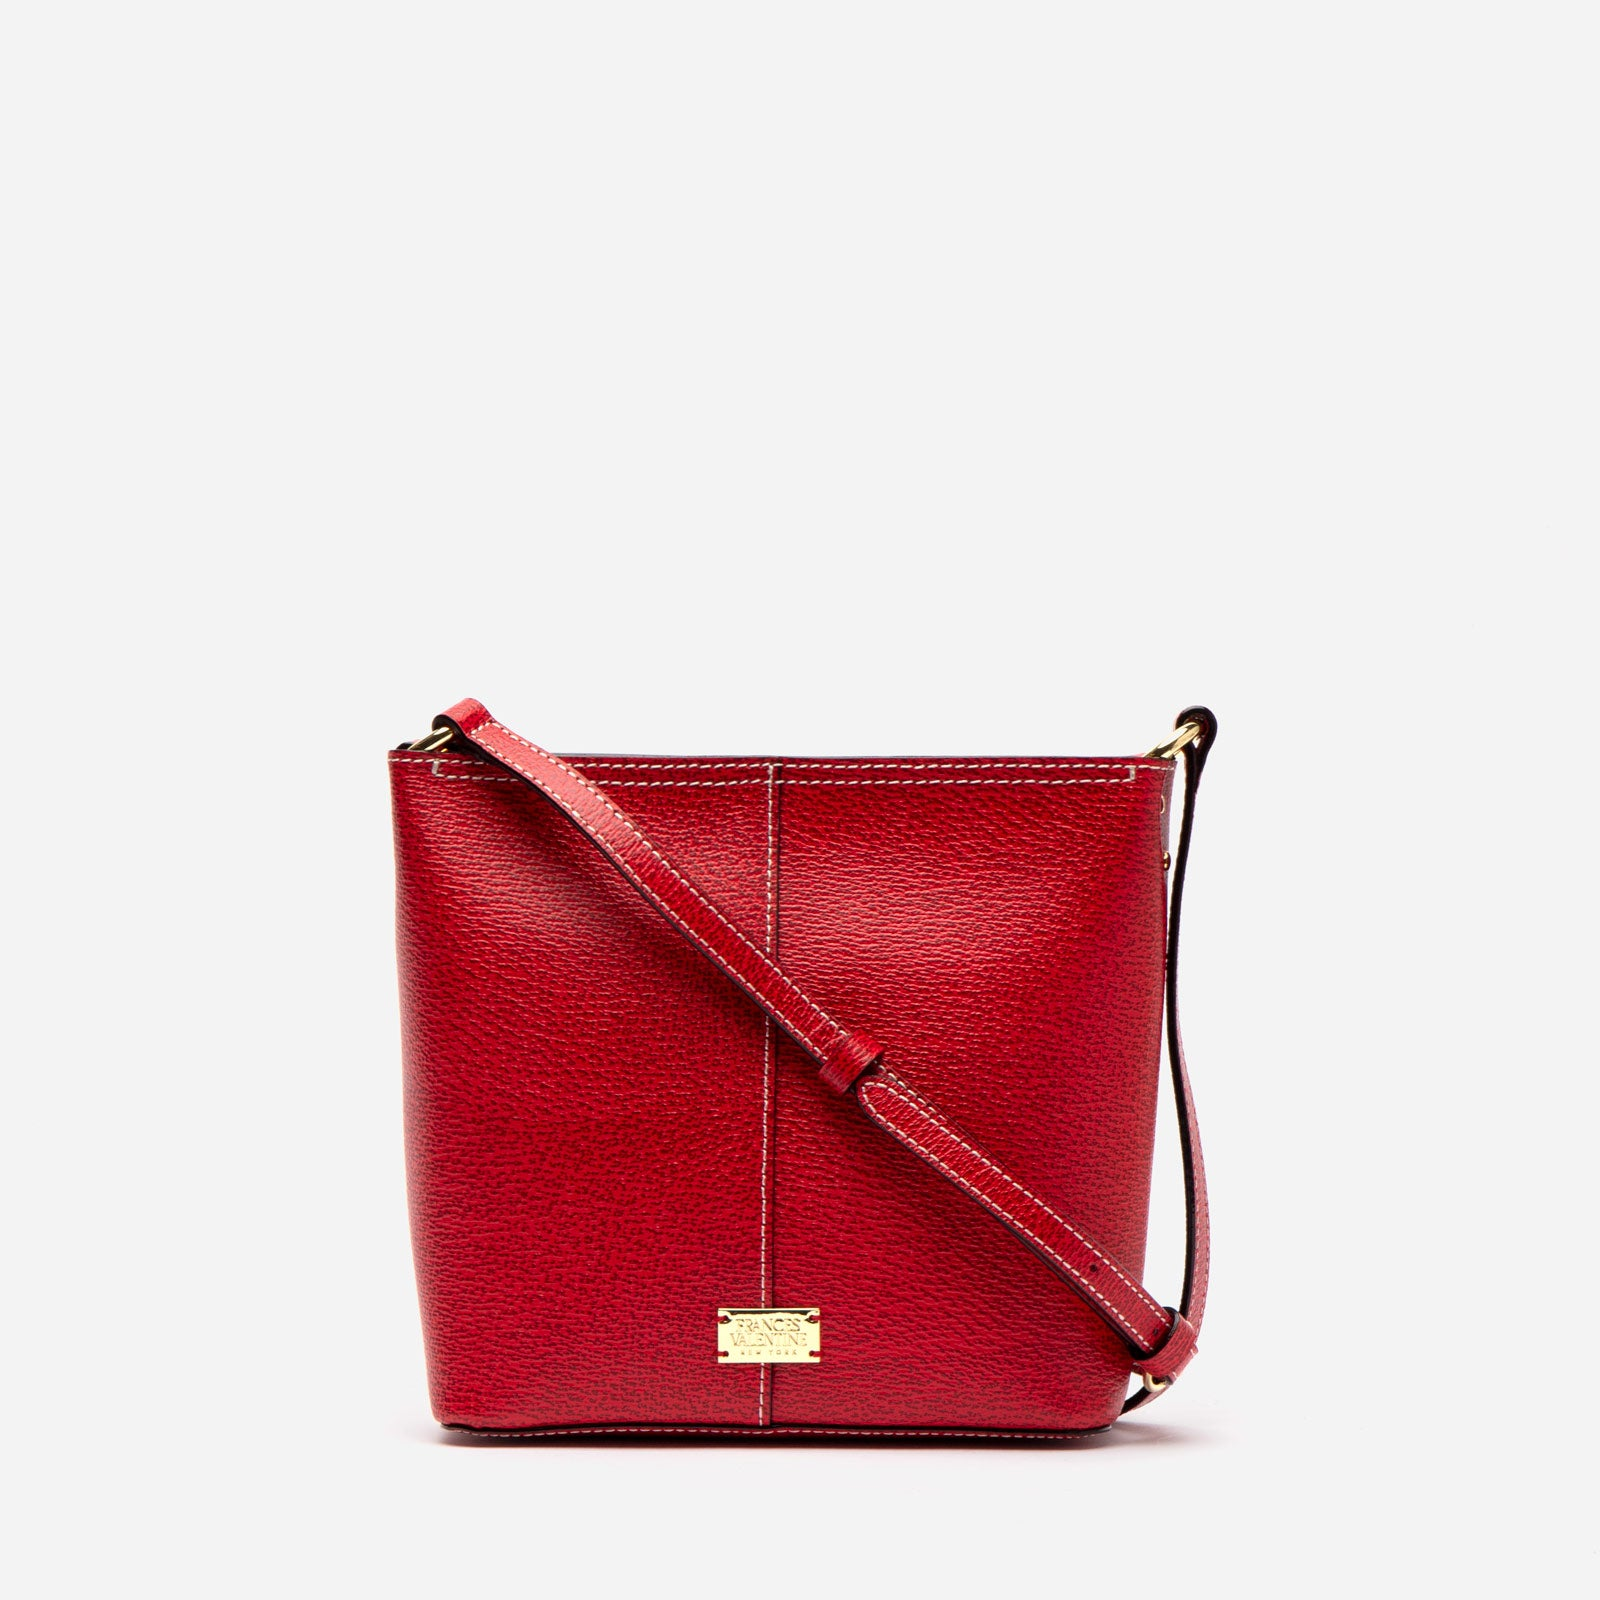 Small Finn Boarskin Leather Red - Frances Valentine